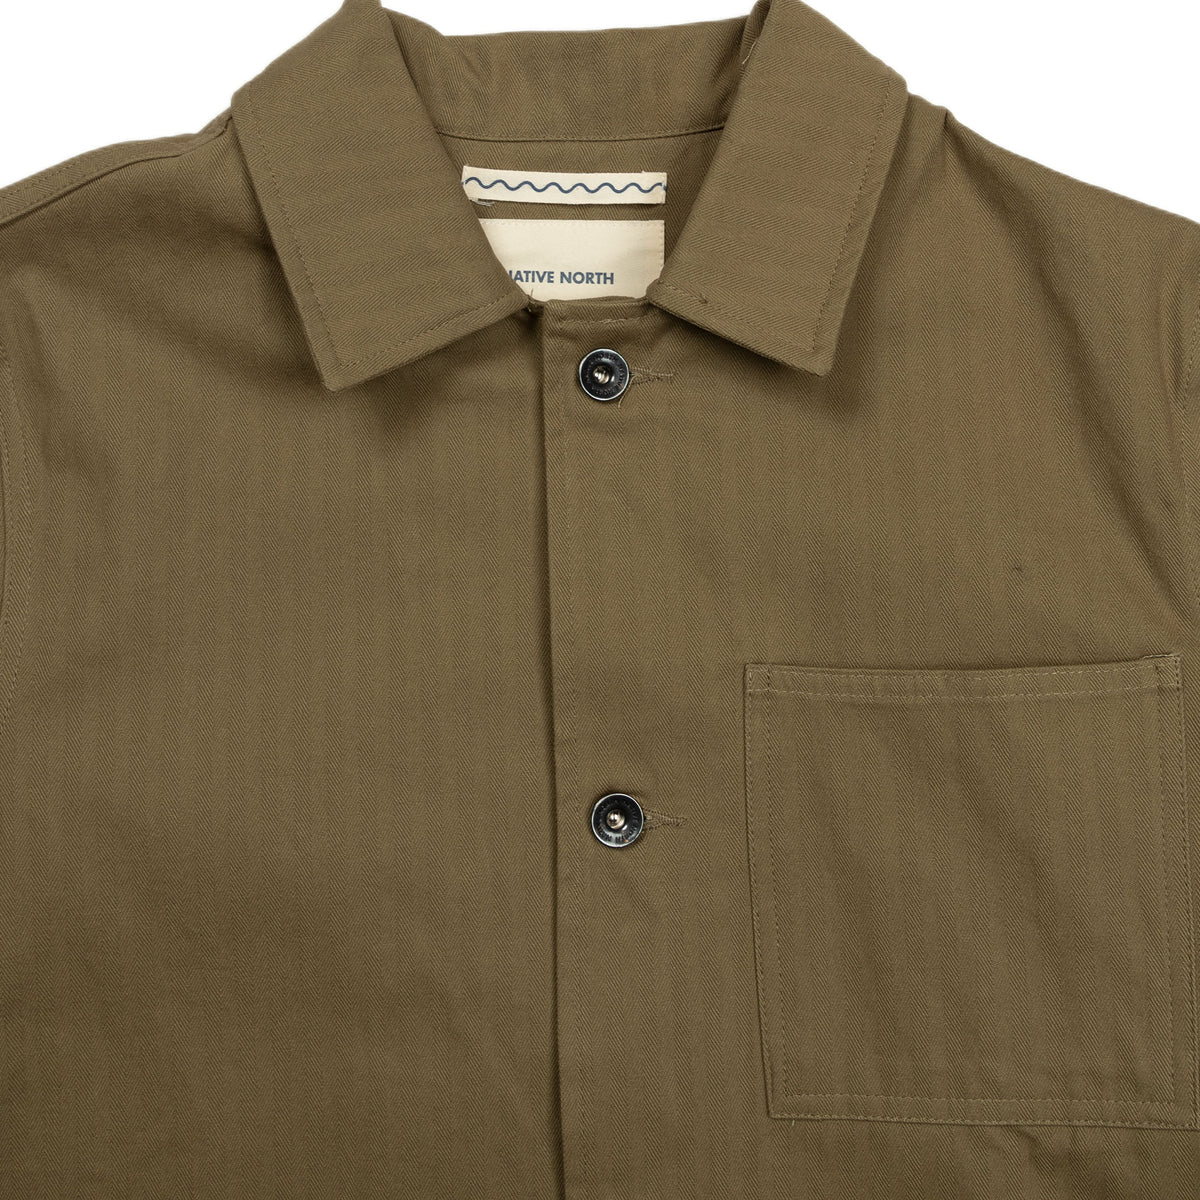 Native North Herringbone Utility Jacket in Green Collar Detail